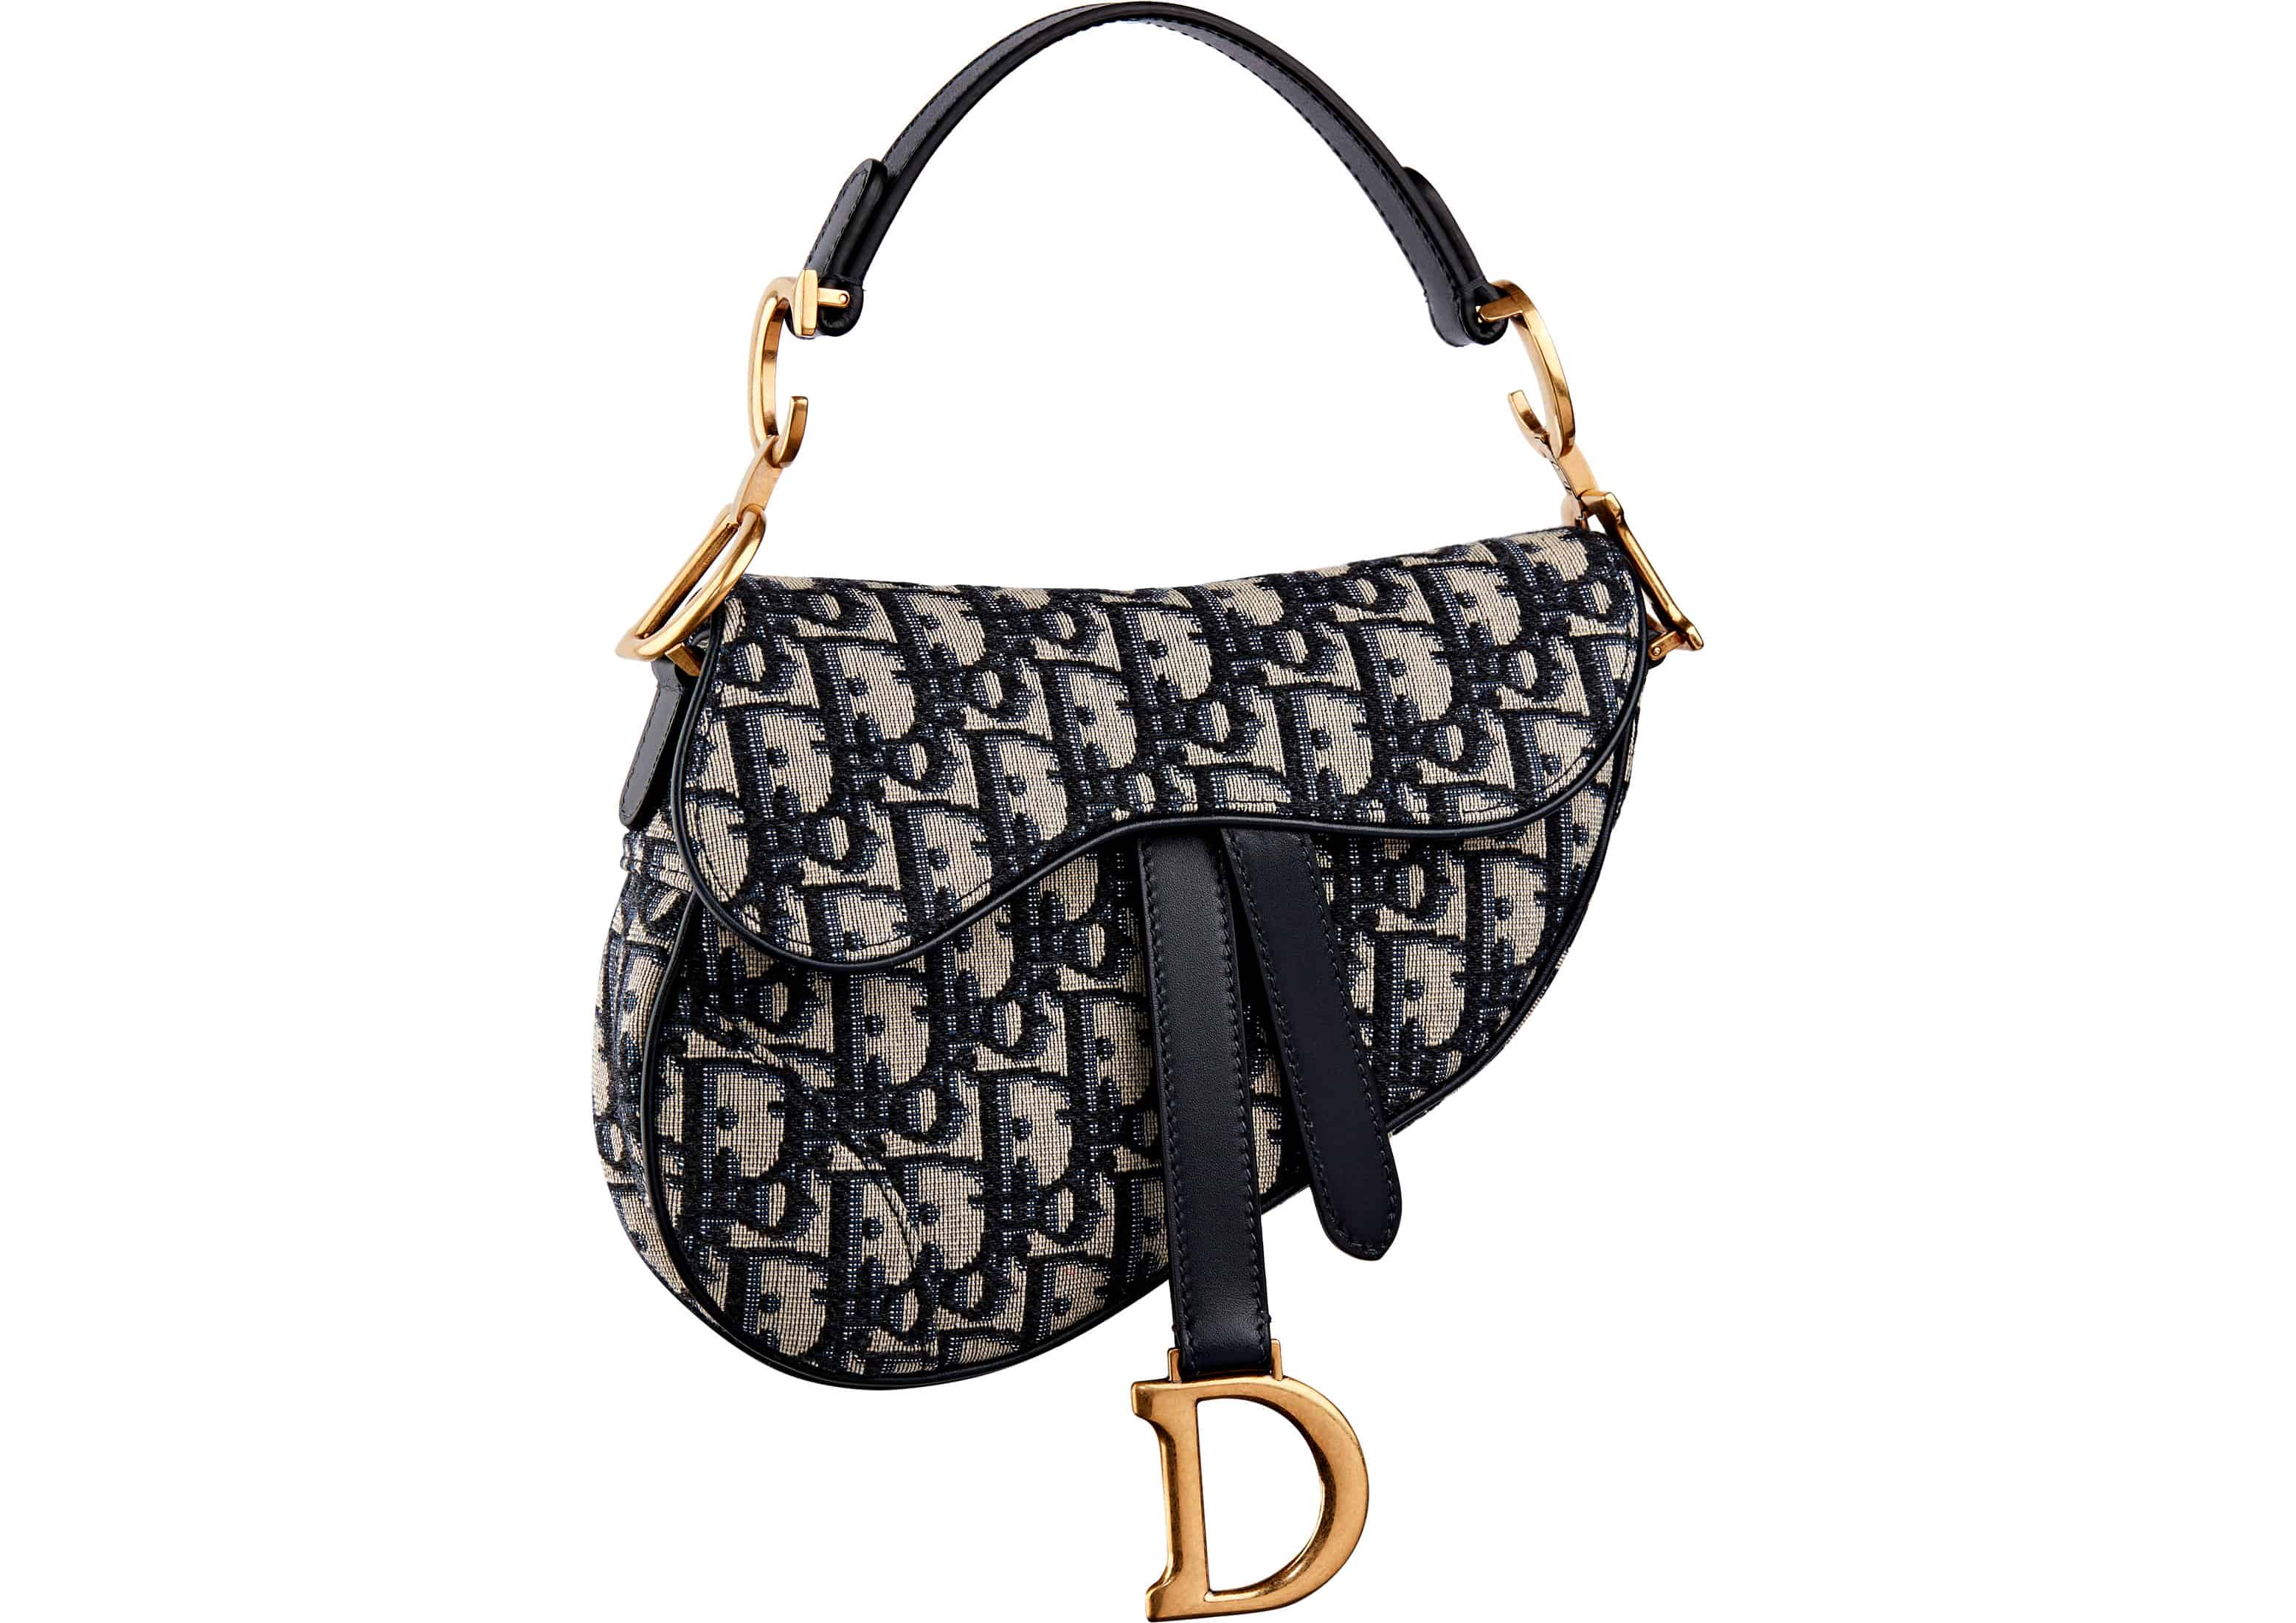 b58cad53f14 The New Dior Saddle Bag Is Finally in Stores — Dior Officially ...